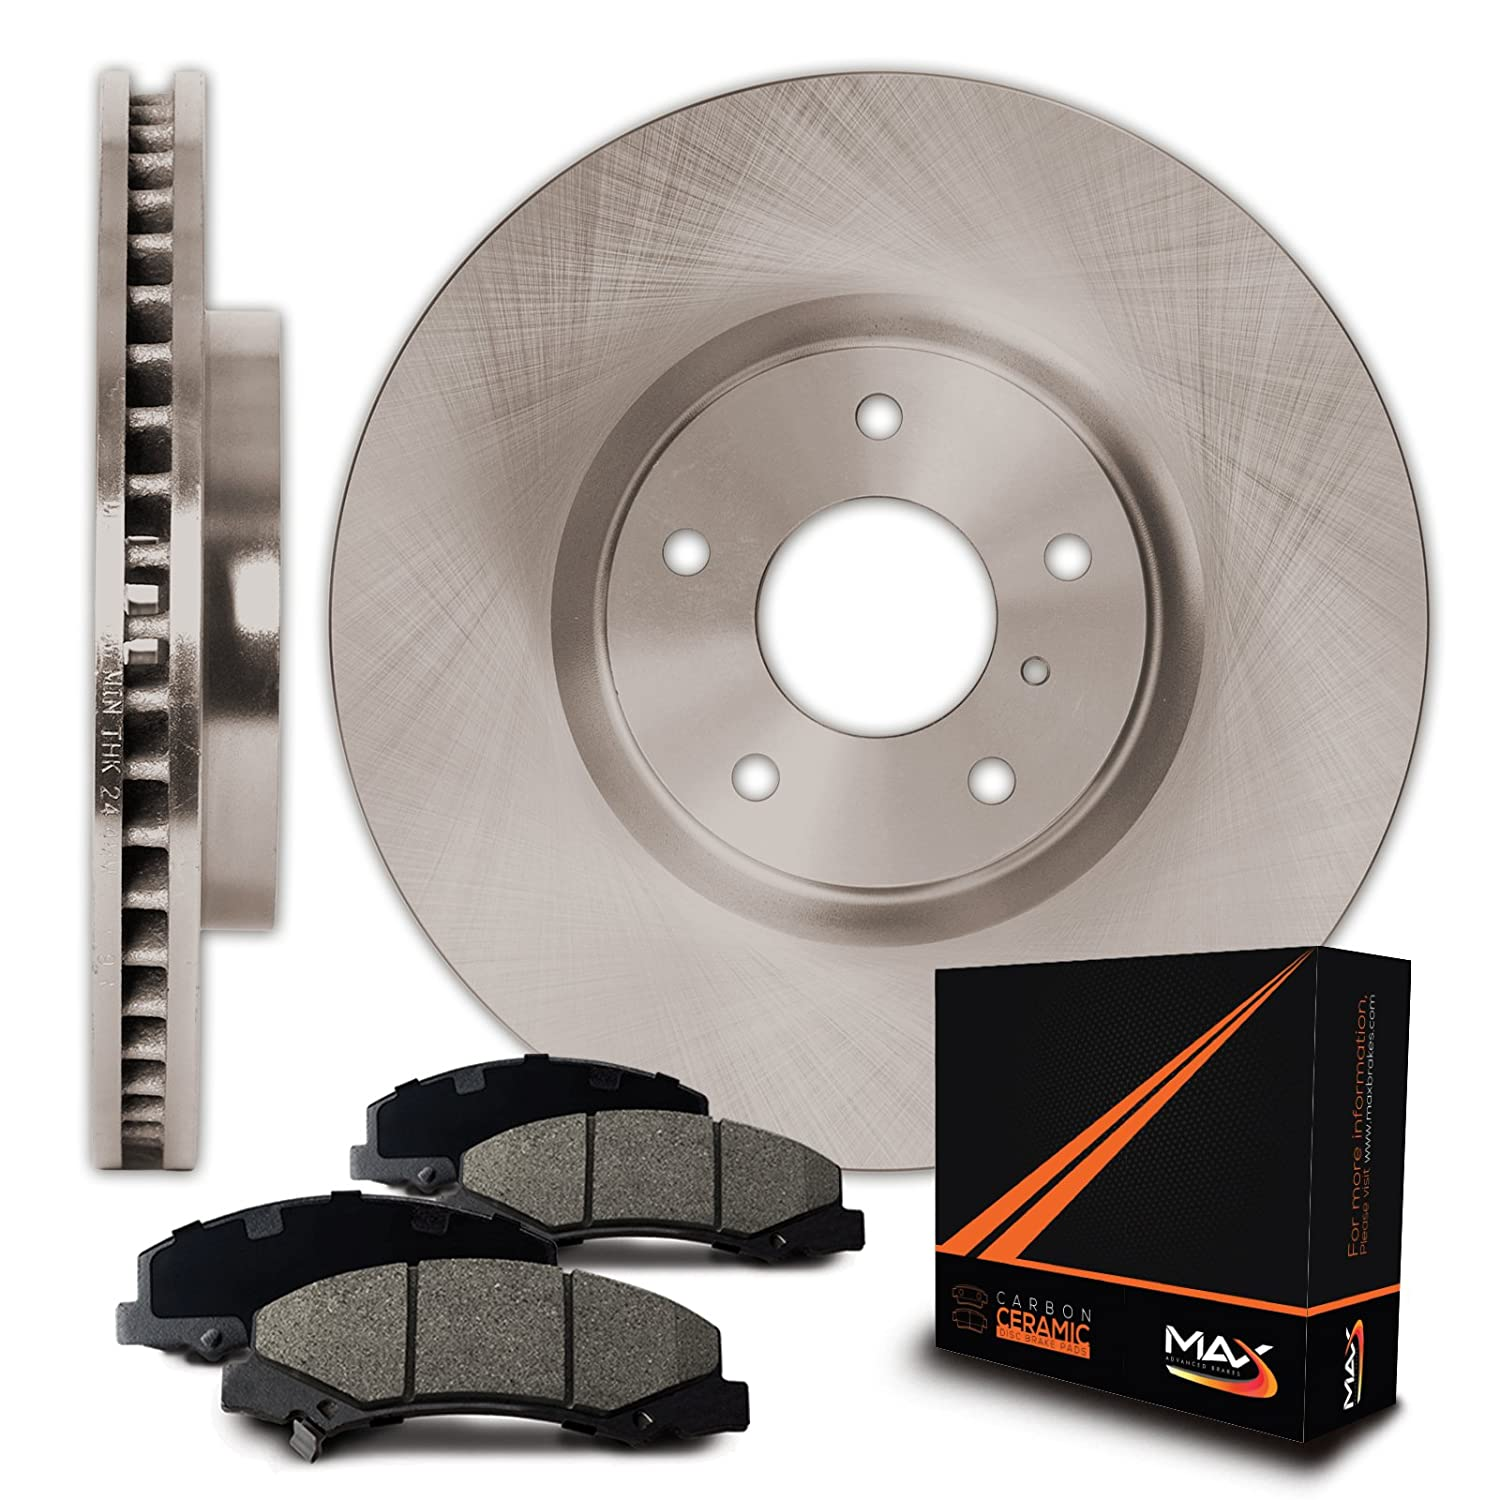 Max Brakes Rear OE Series Rotors w/Ceramic Pads Premium Brake Kit KT070942 | Fits: 2005 05 Jeep Grand Cherokee; Non SRT-8 Models Max Advanced Brakes